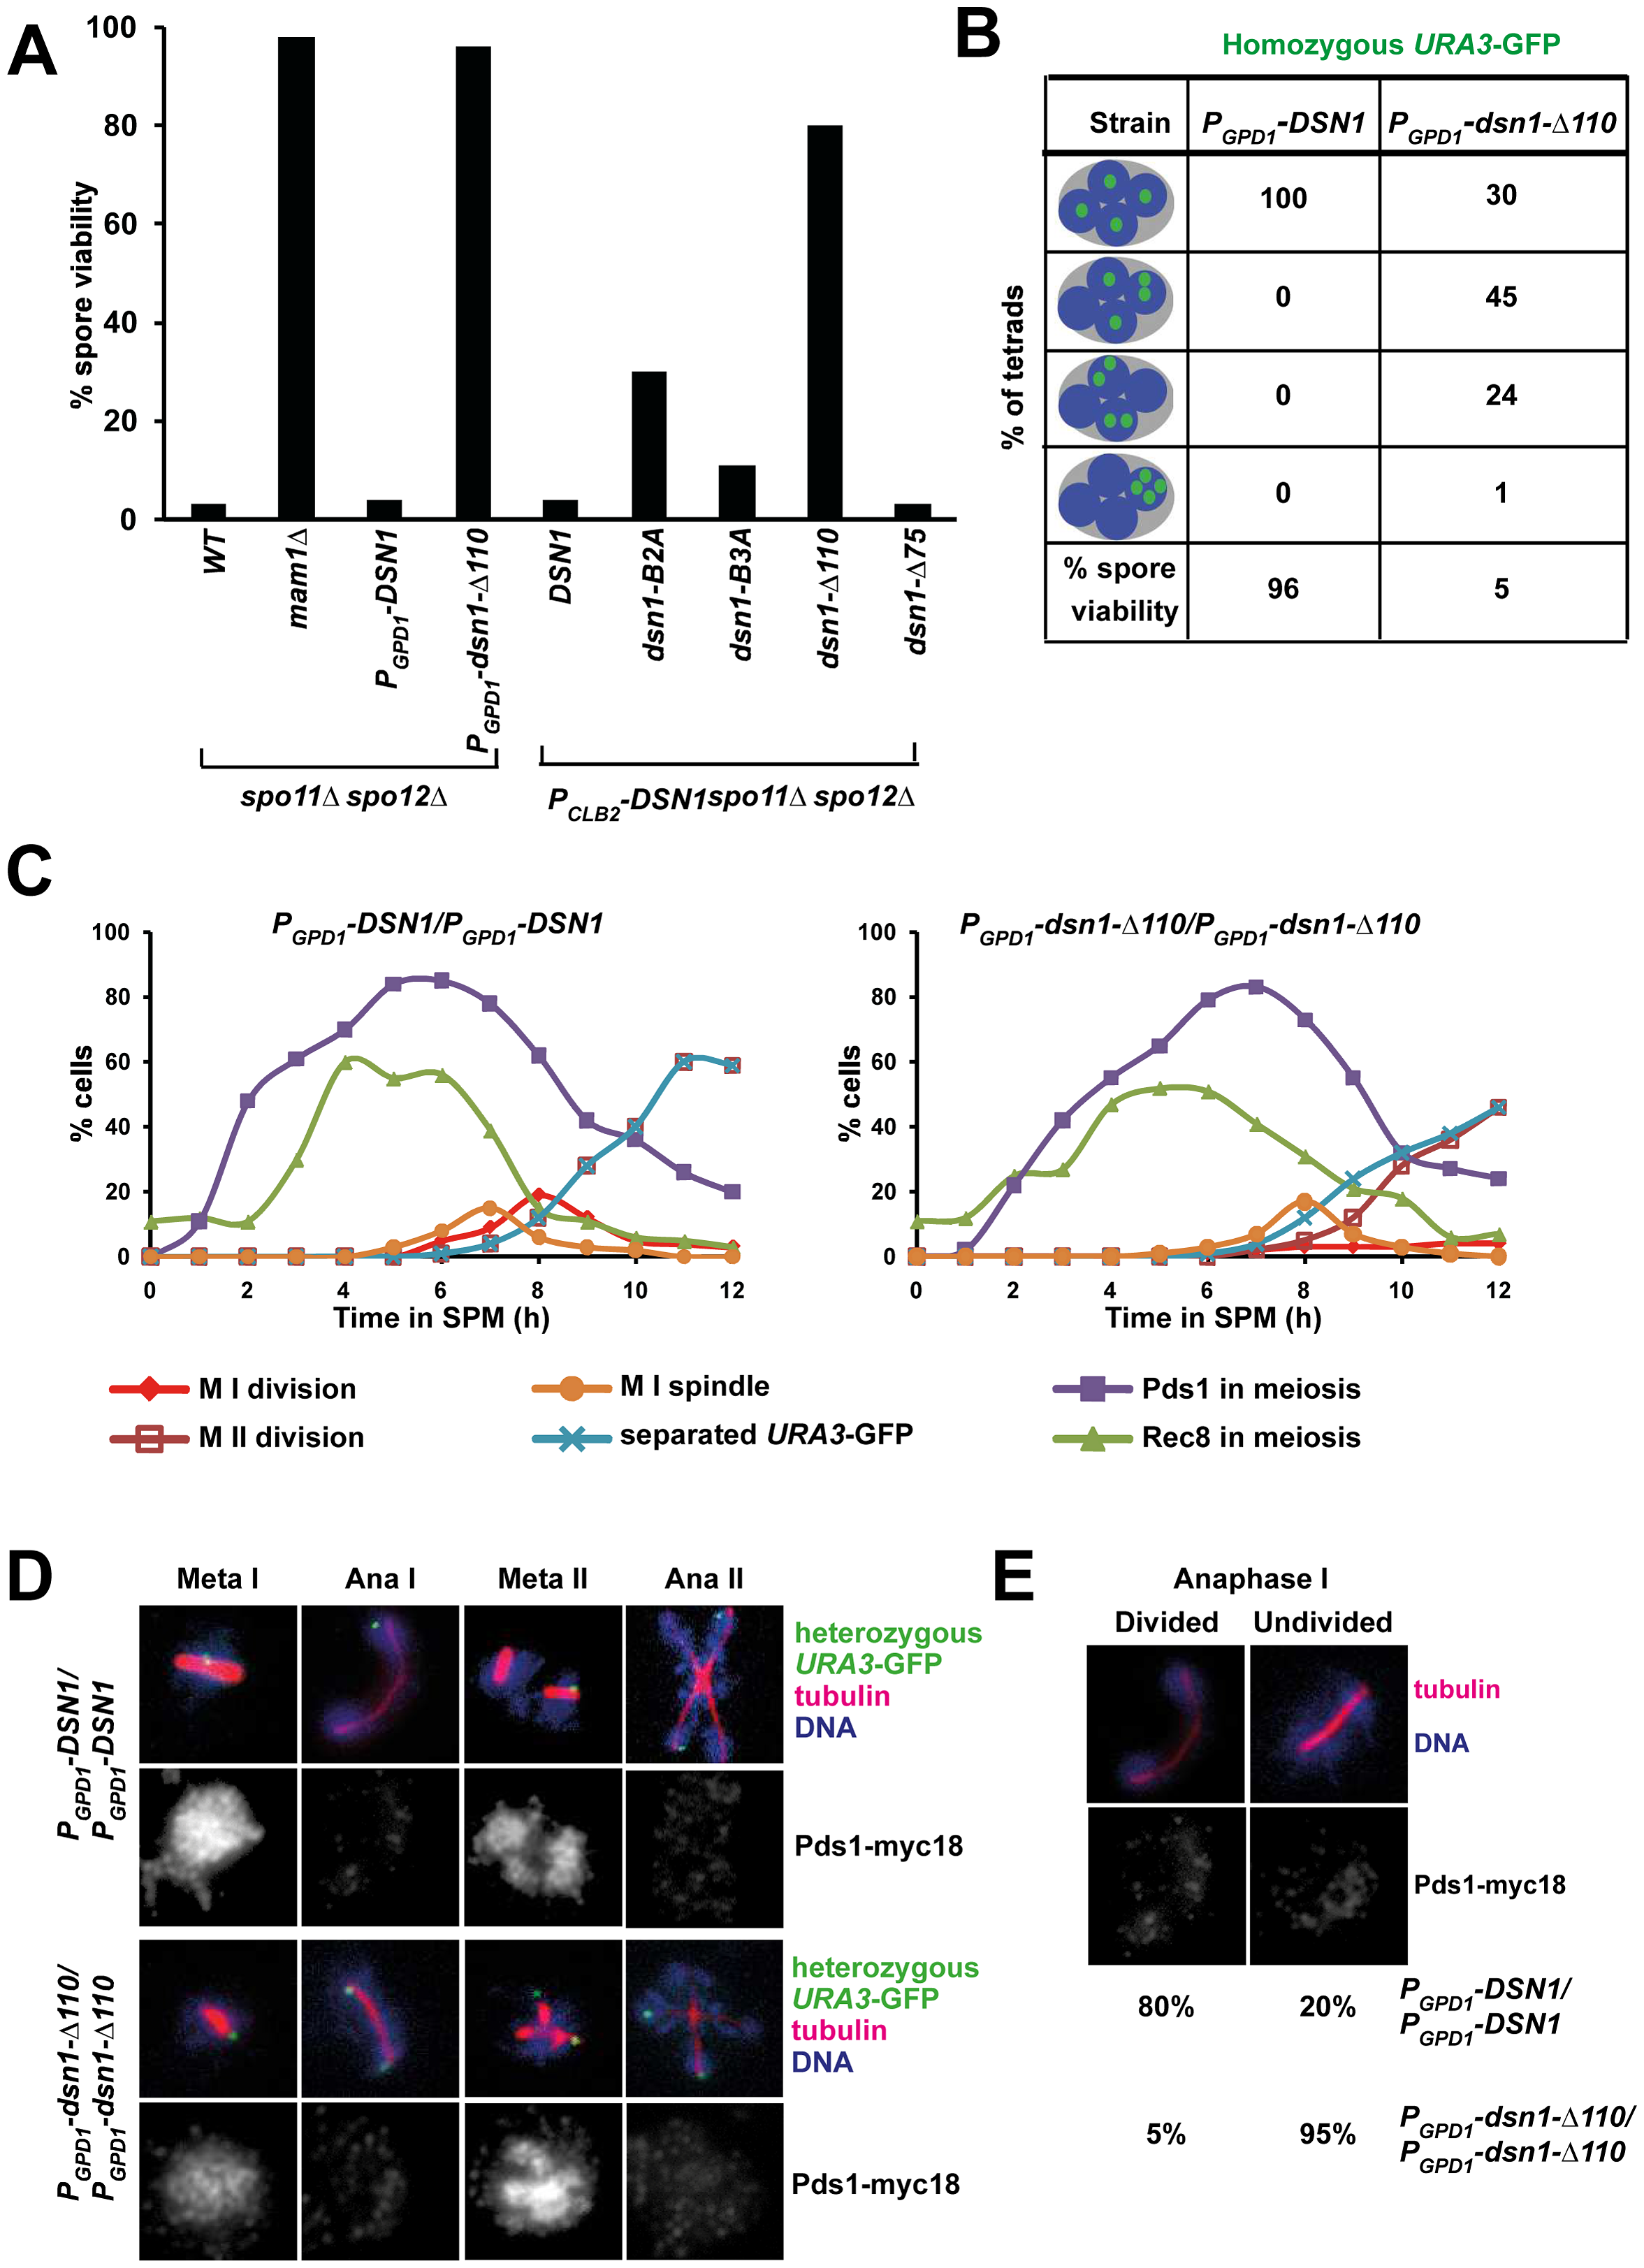 The Csm1-Interaction Domain of Dsn1 is required for the first meiotic nuclear division.